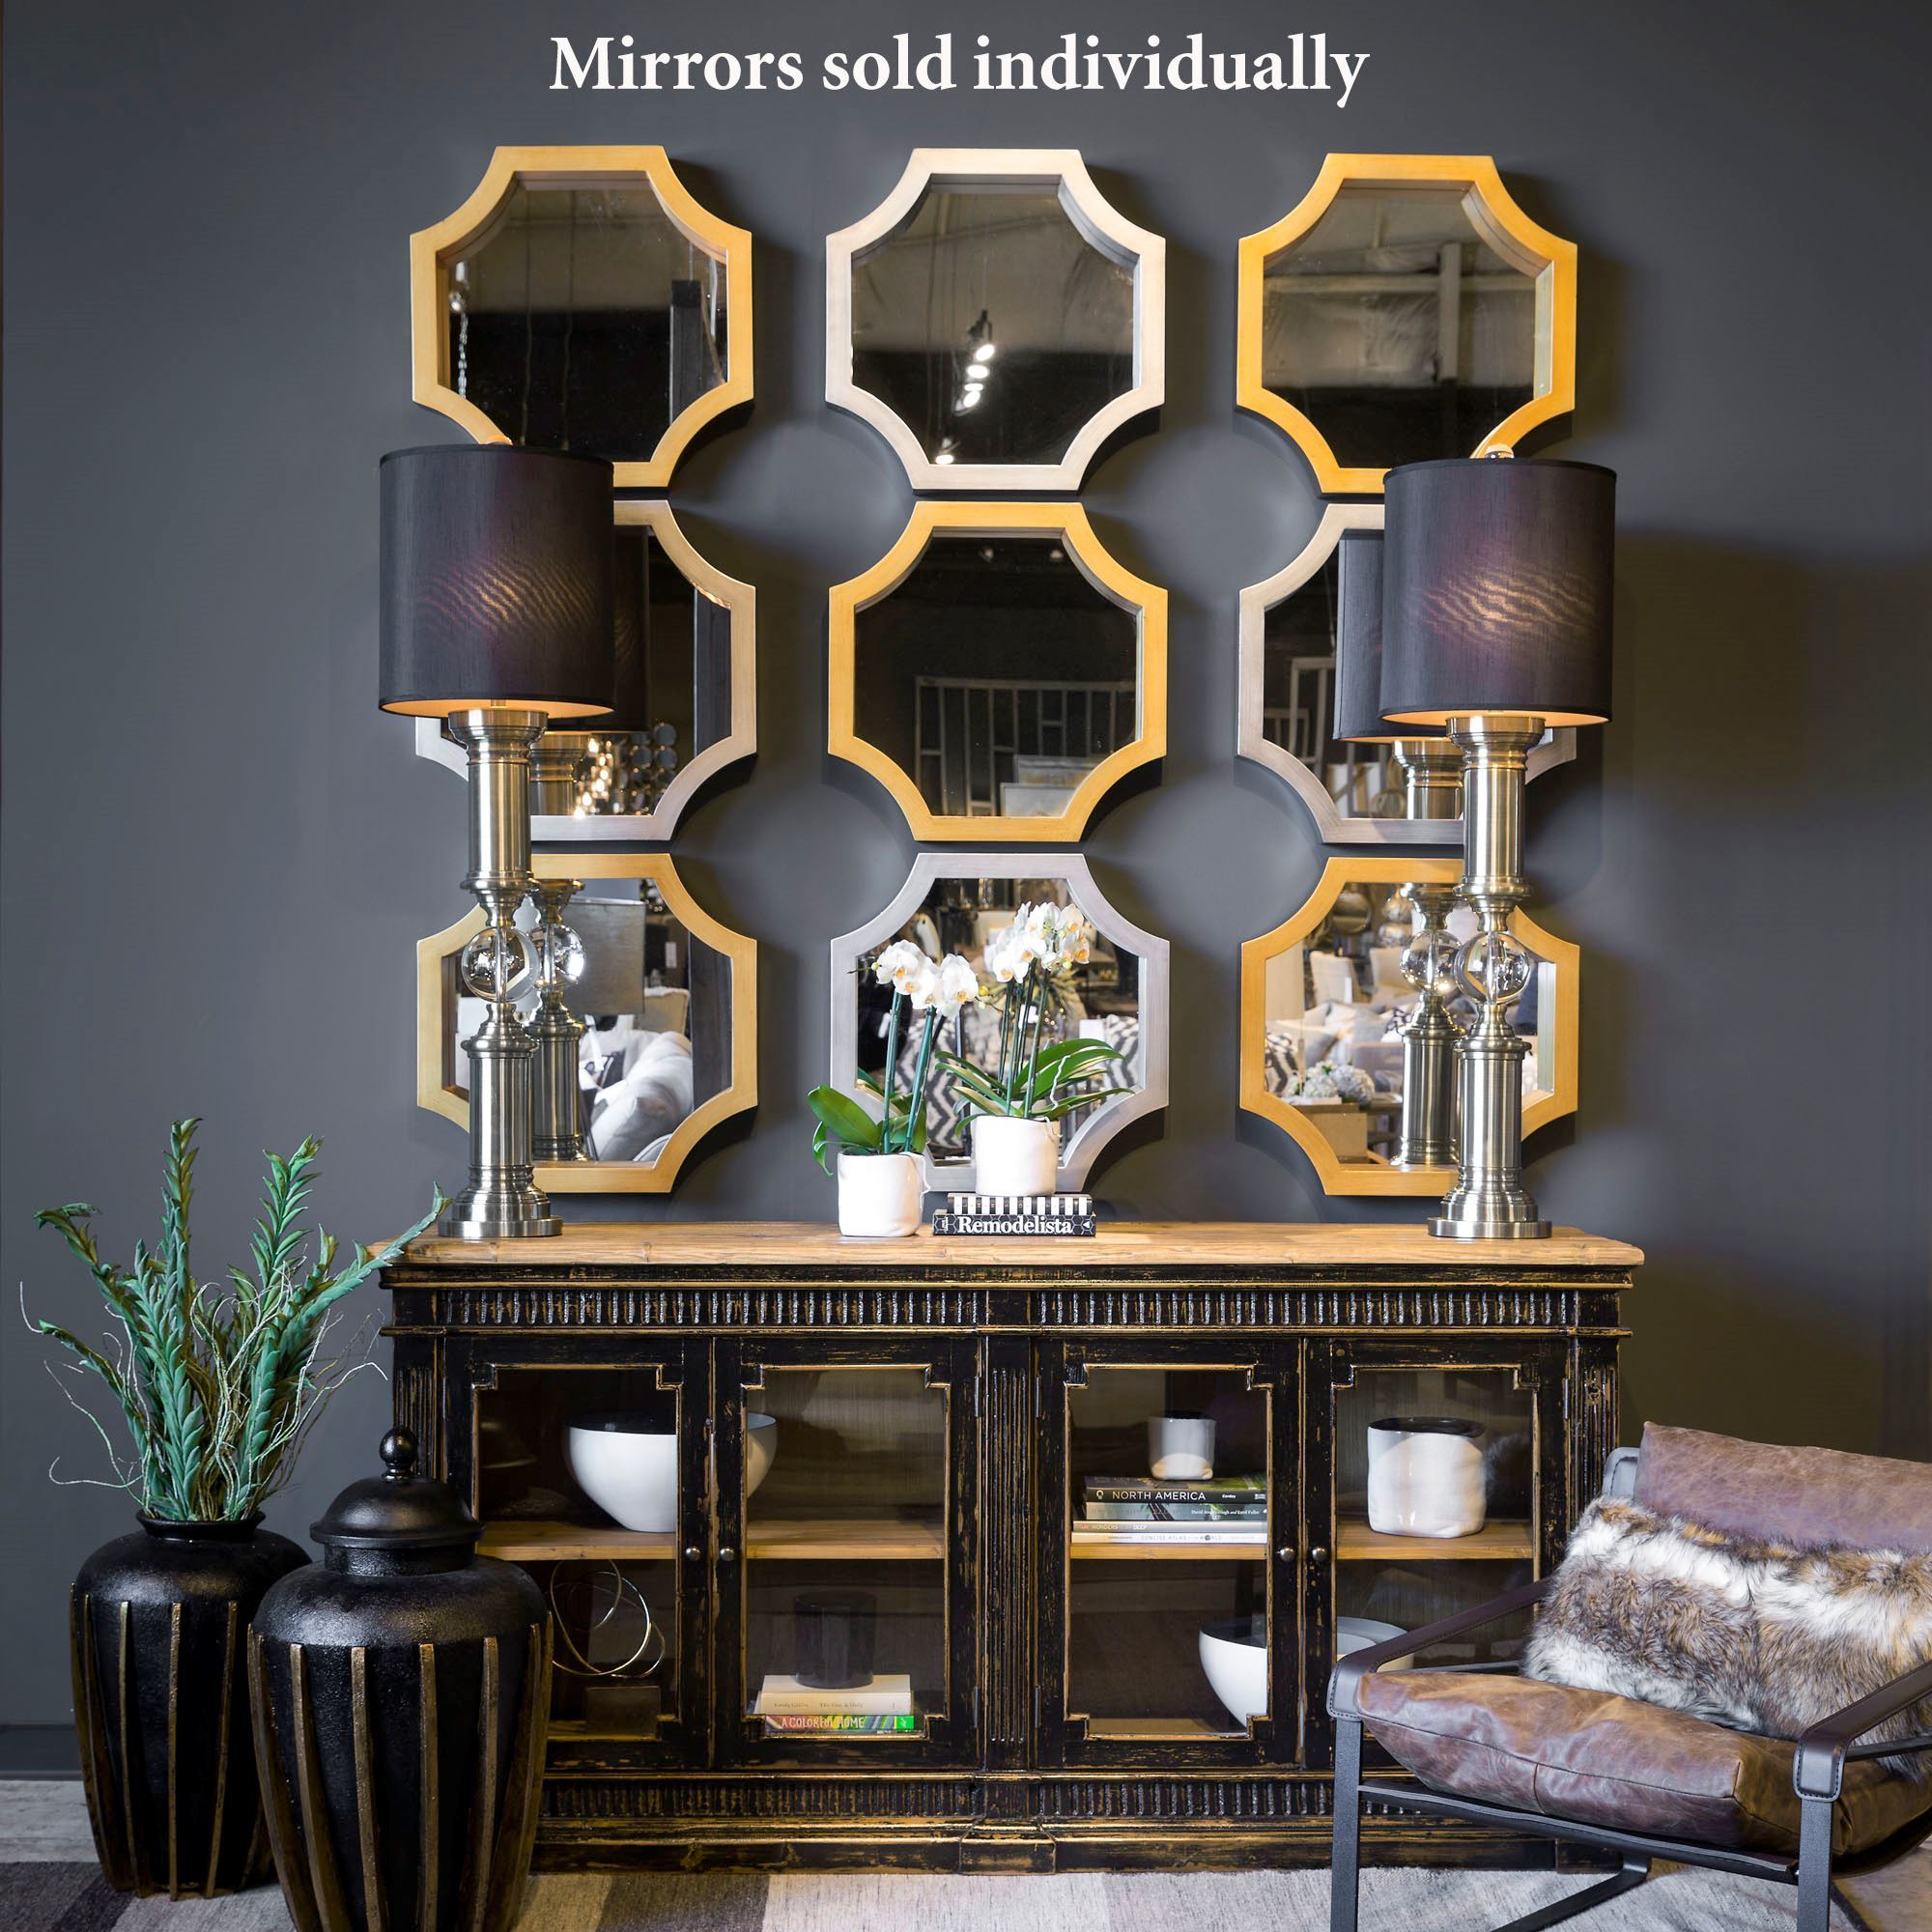 Mattingly Octagonal Accent Wall Mirror Regarding Accent Wall Mirrors (Image 20 of 20)